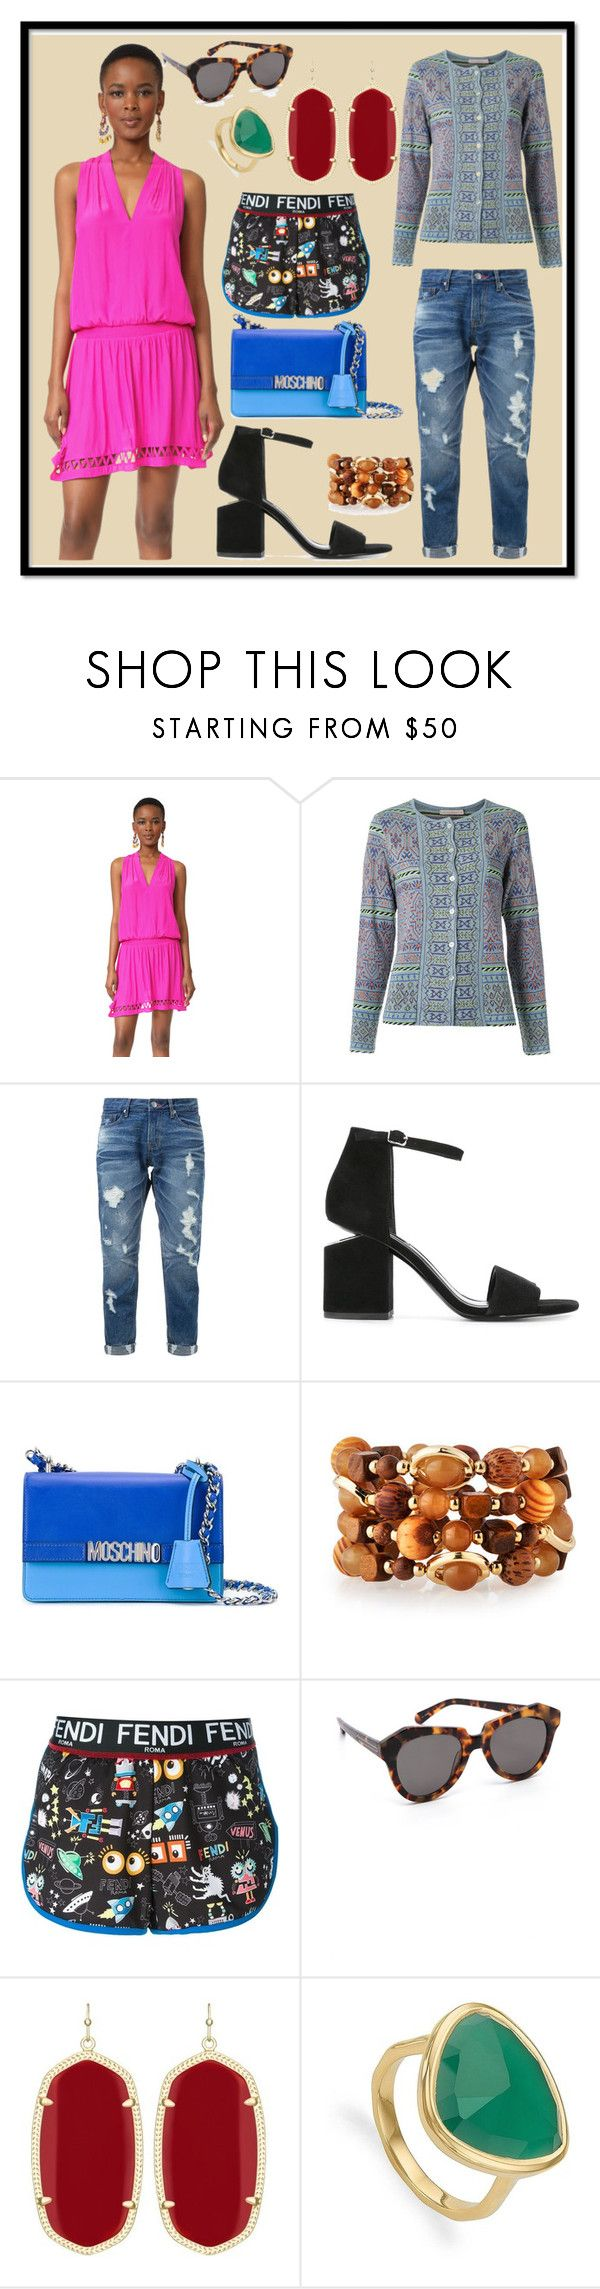 """Hollywood Style"" by cate-jennifer ❤ liked on Polyvore featuring Ramy Brook, Cecilia Pradomurion, Guild Prime, Alexander Wang, Moschino, Emily & Ashley, Fendi, Karen Walker, Kendra Scott and Monica Vinader"